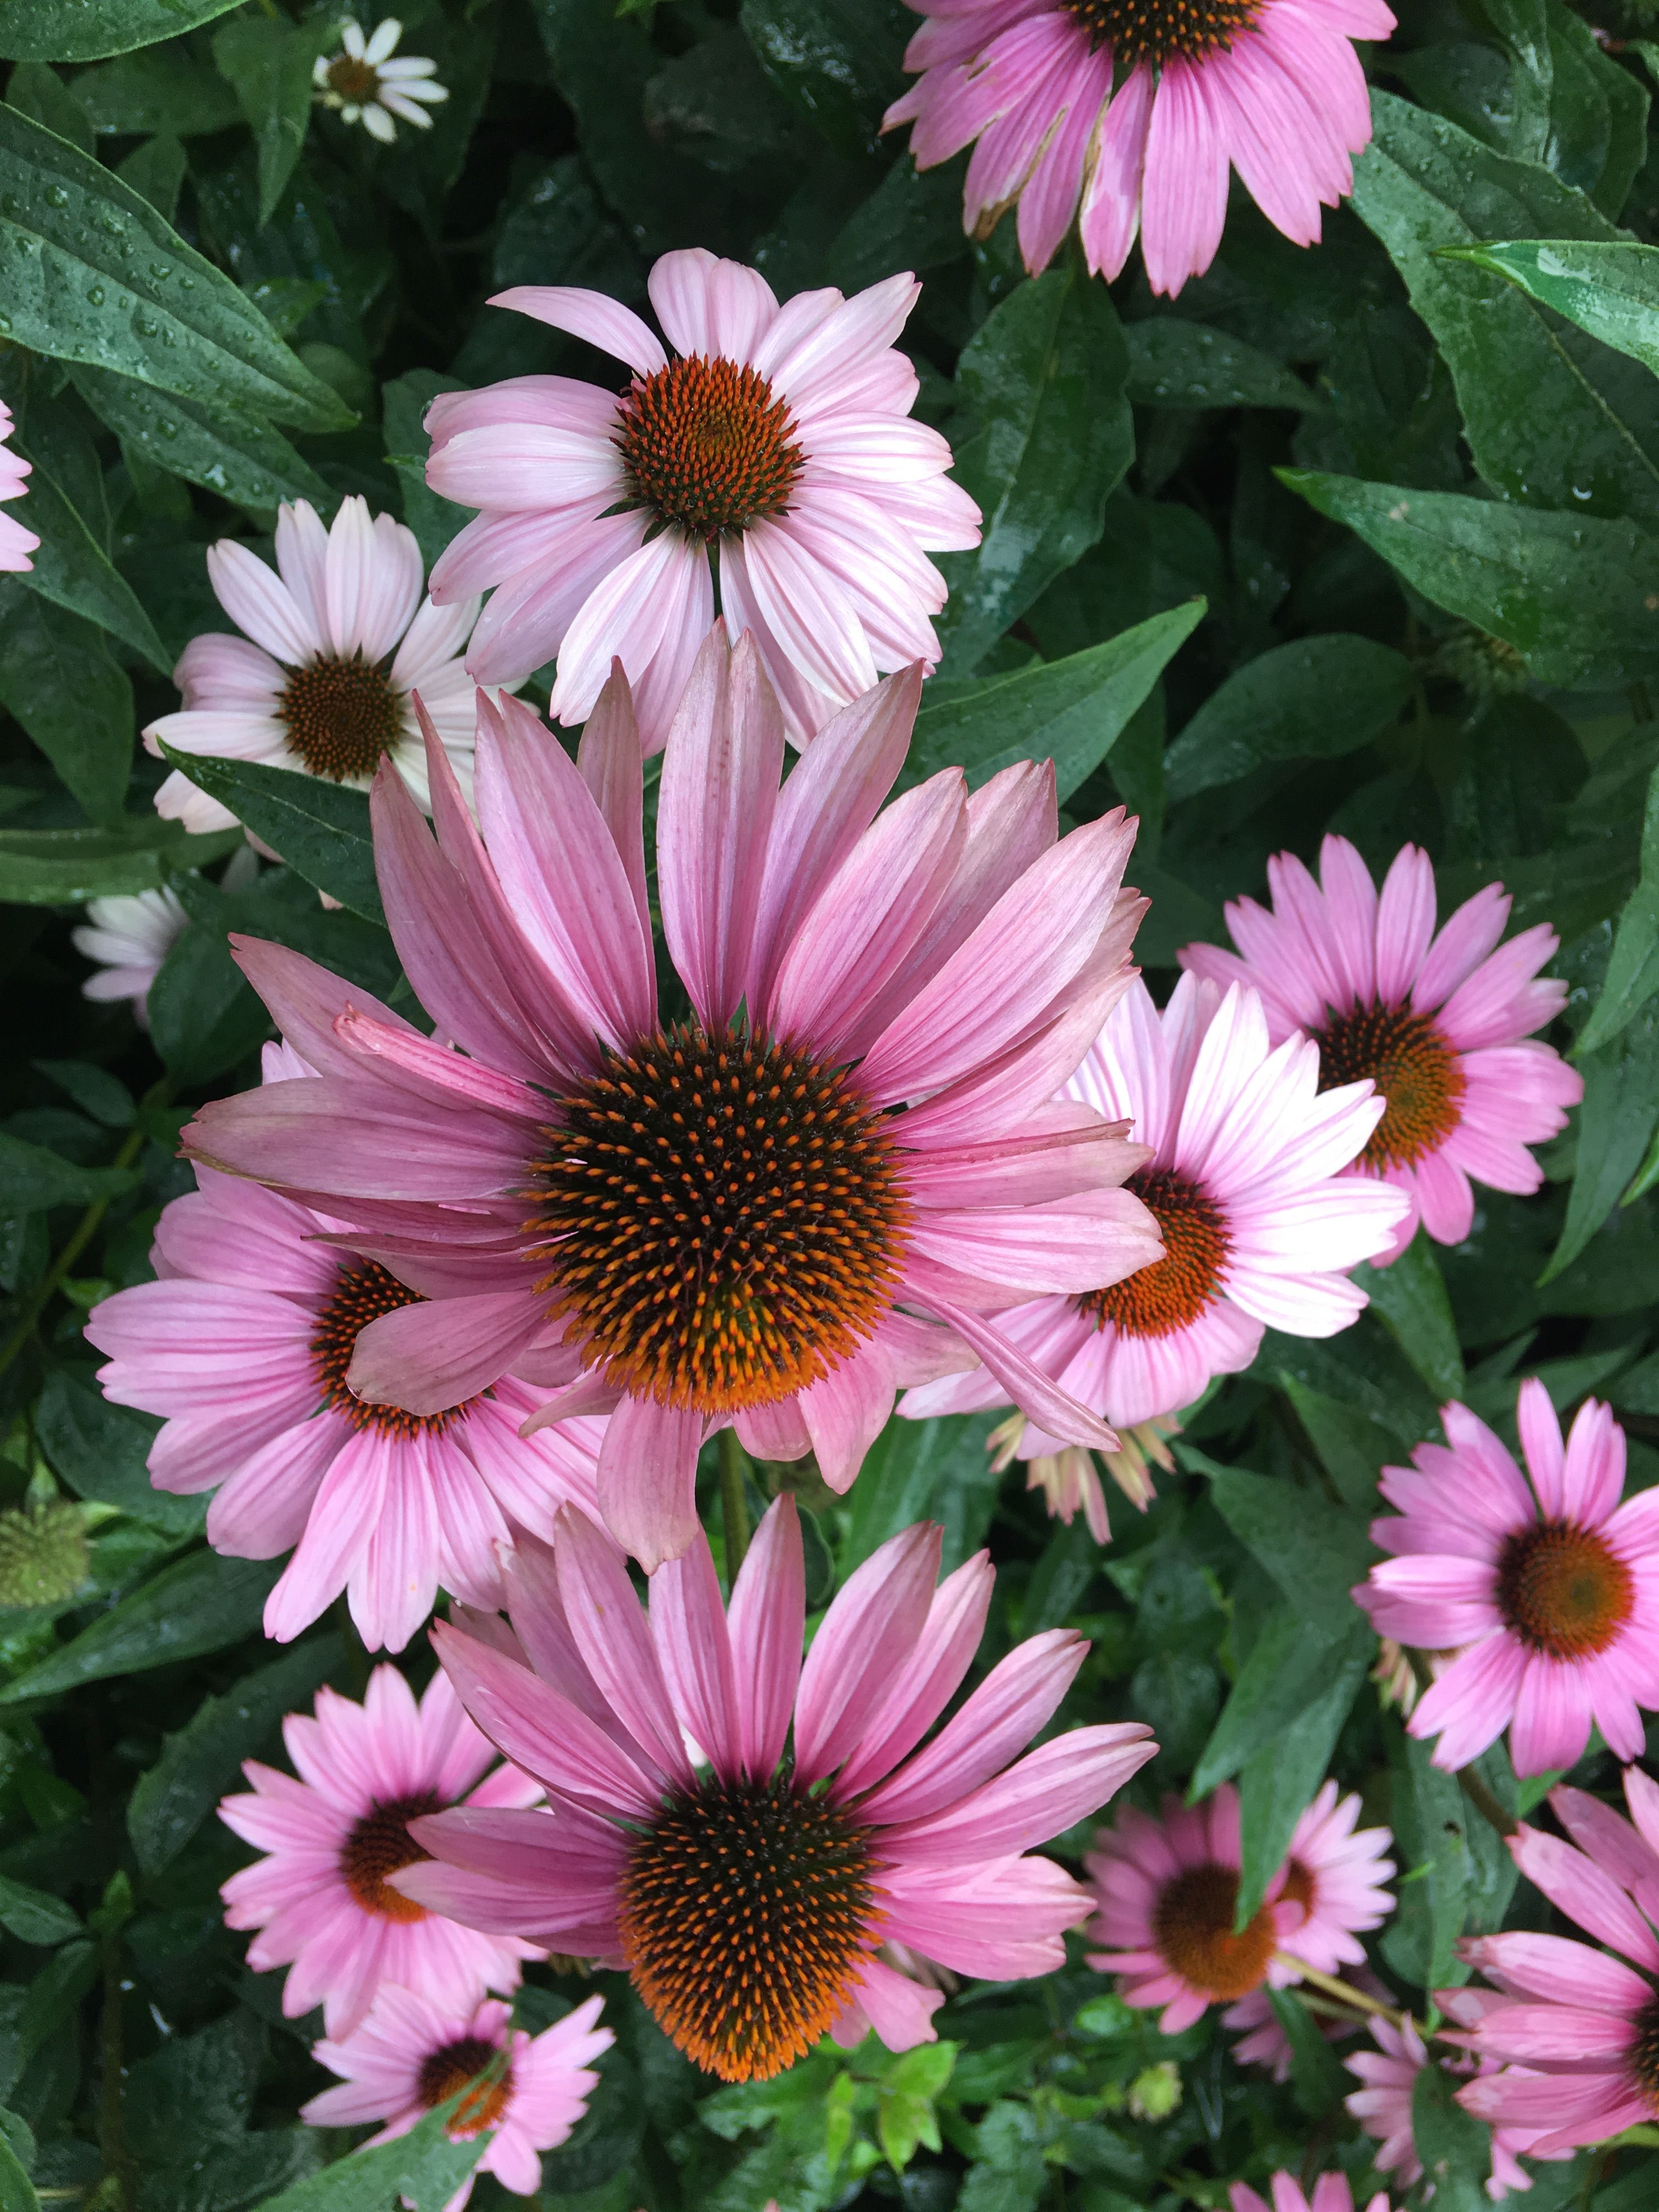 Pin by brianna rentas on flowers pinterest